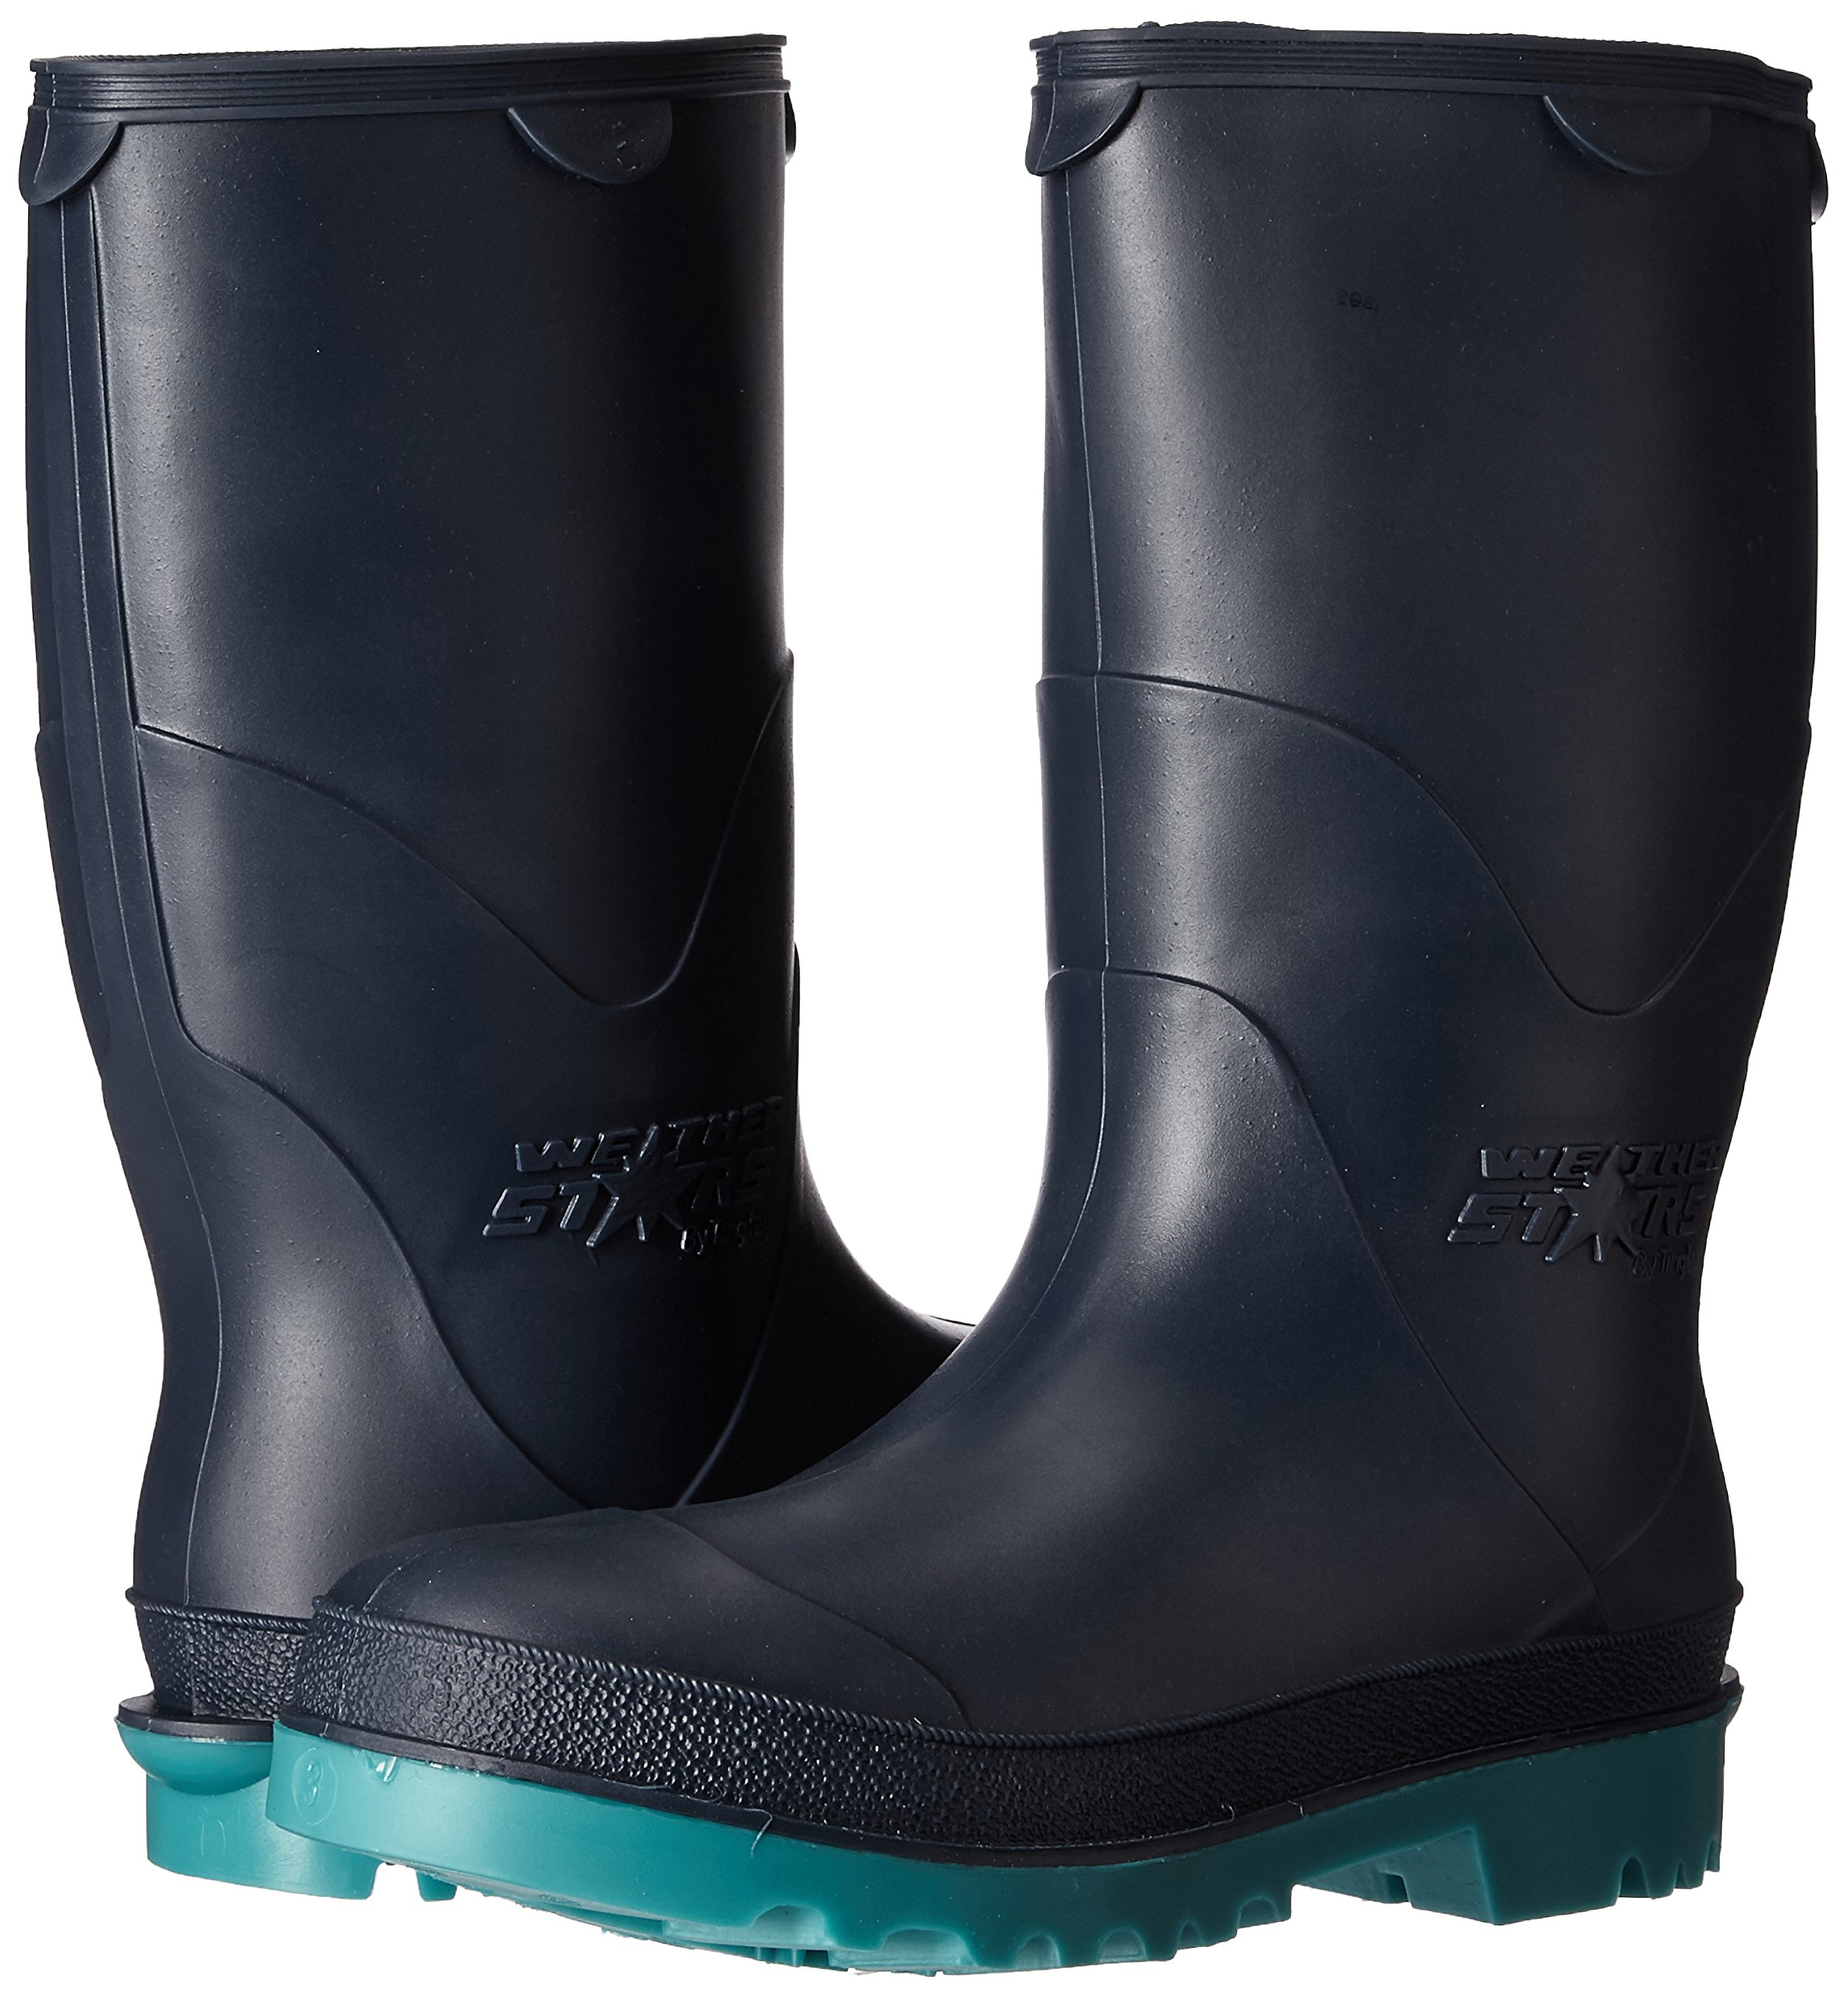 STORMTRACKS 11768.03 Youths' Boot, Size 03, Blue/Green by STORMTRACKS (Image #6)